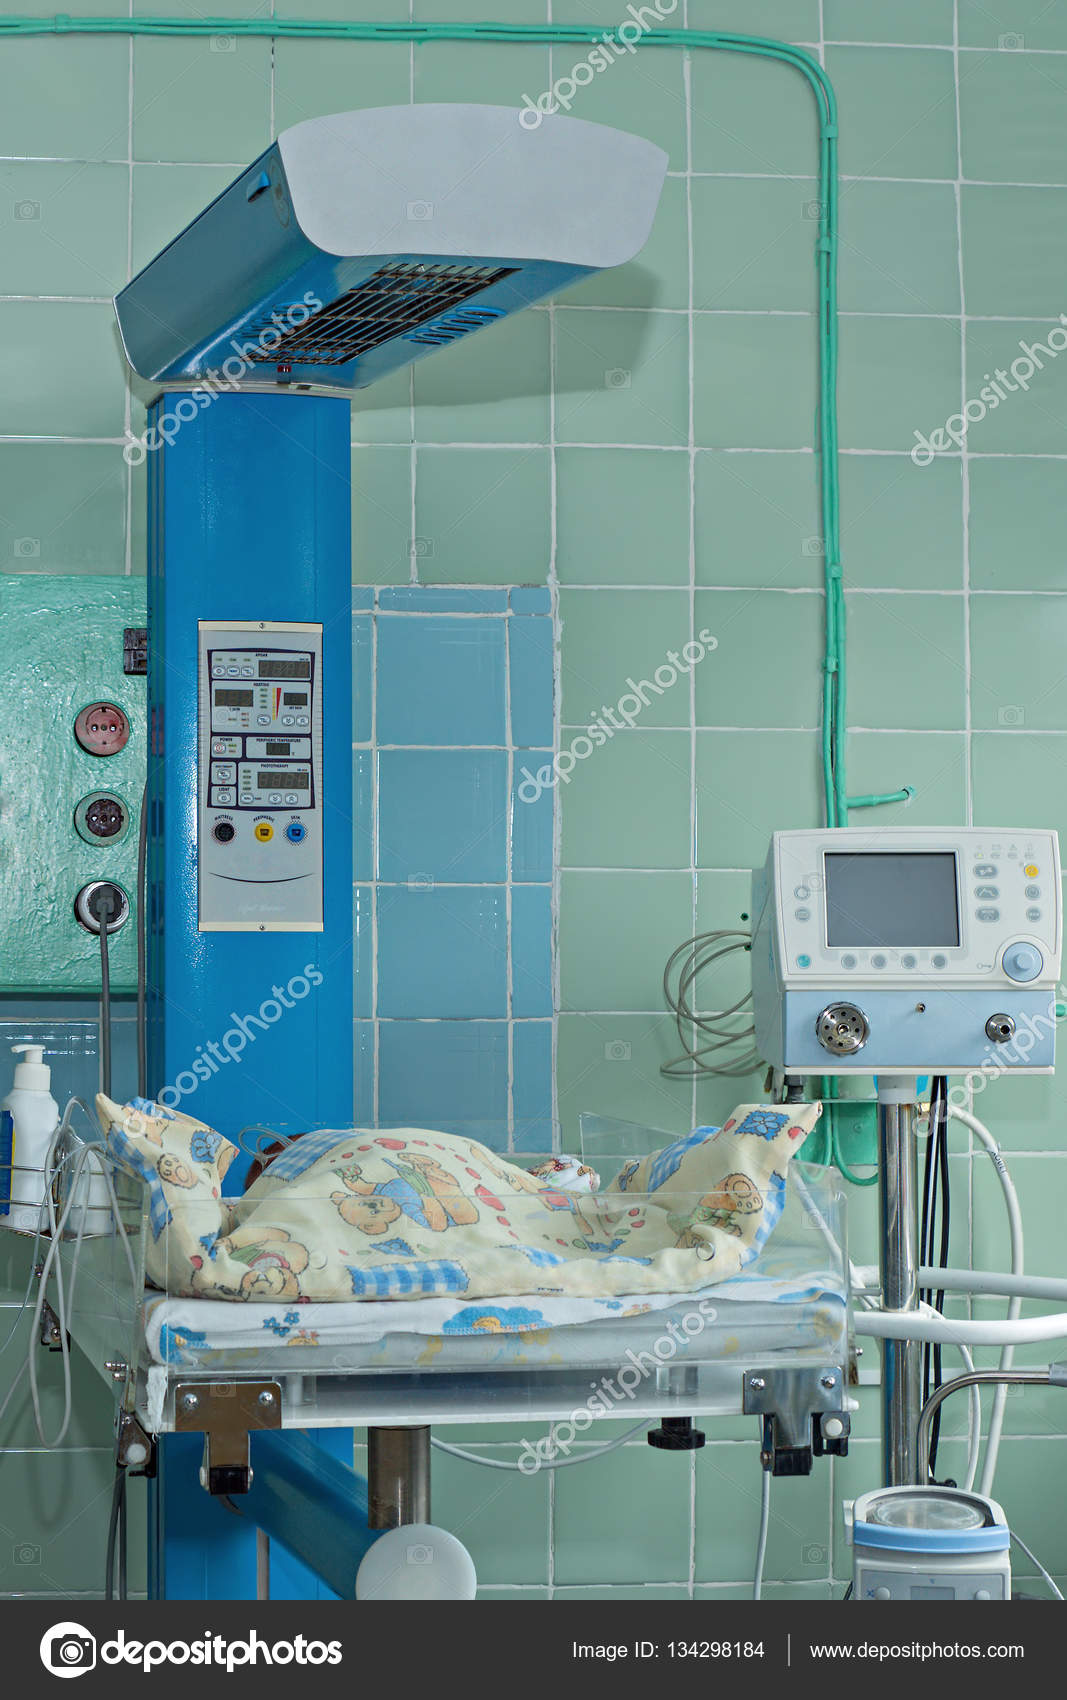 Newborn Baby On Infant Warmer In Neonatal Intensive Care Unit '�  Stock  Photo #134298184